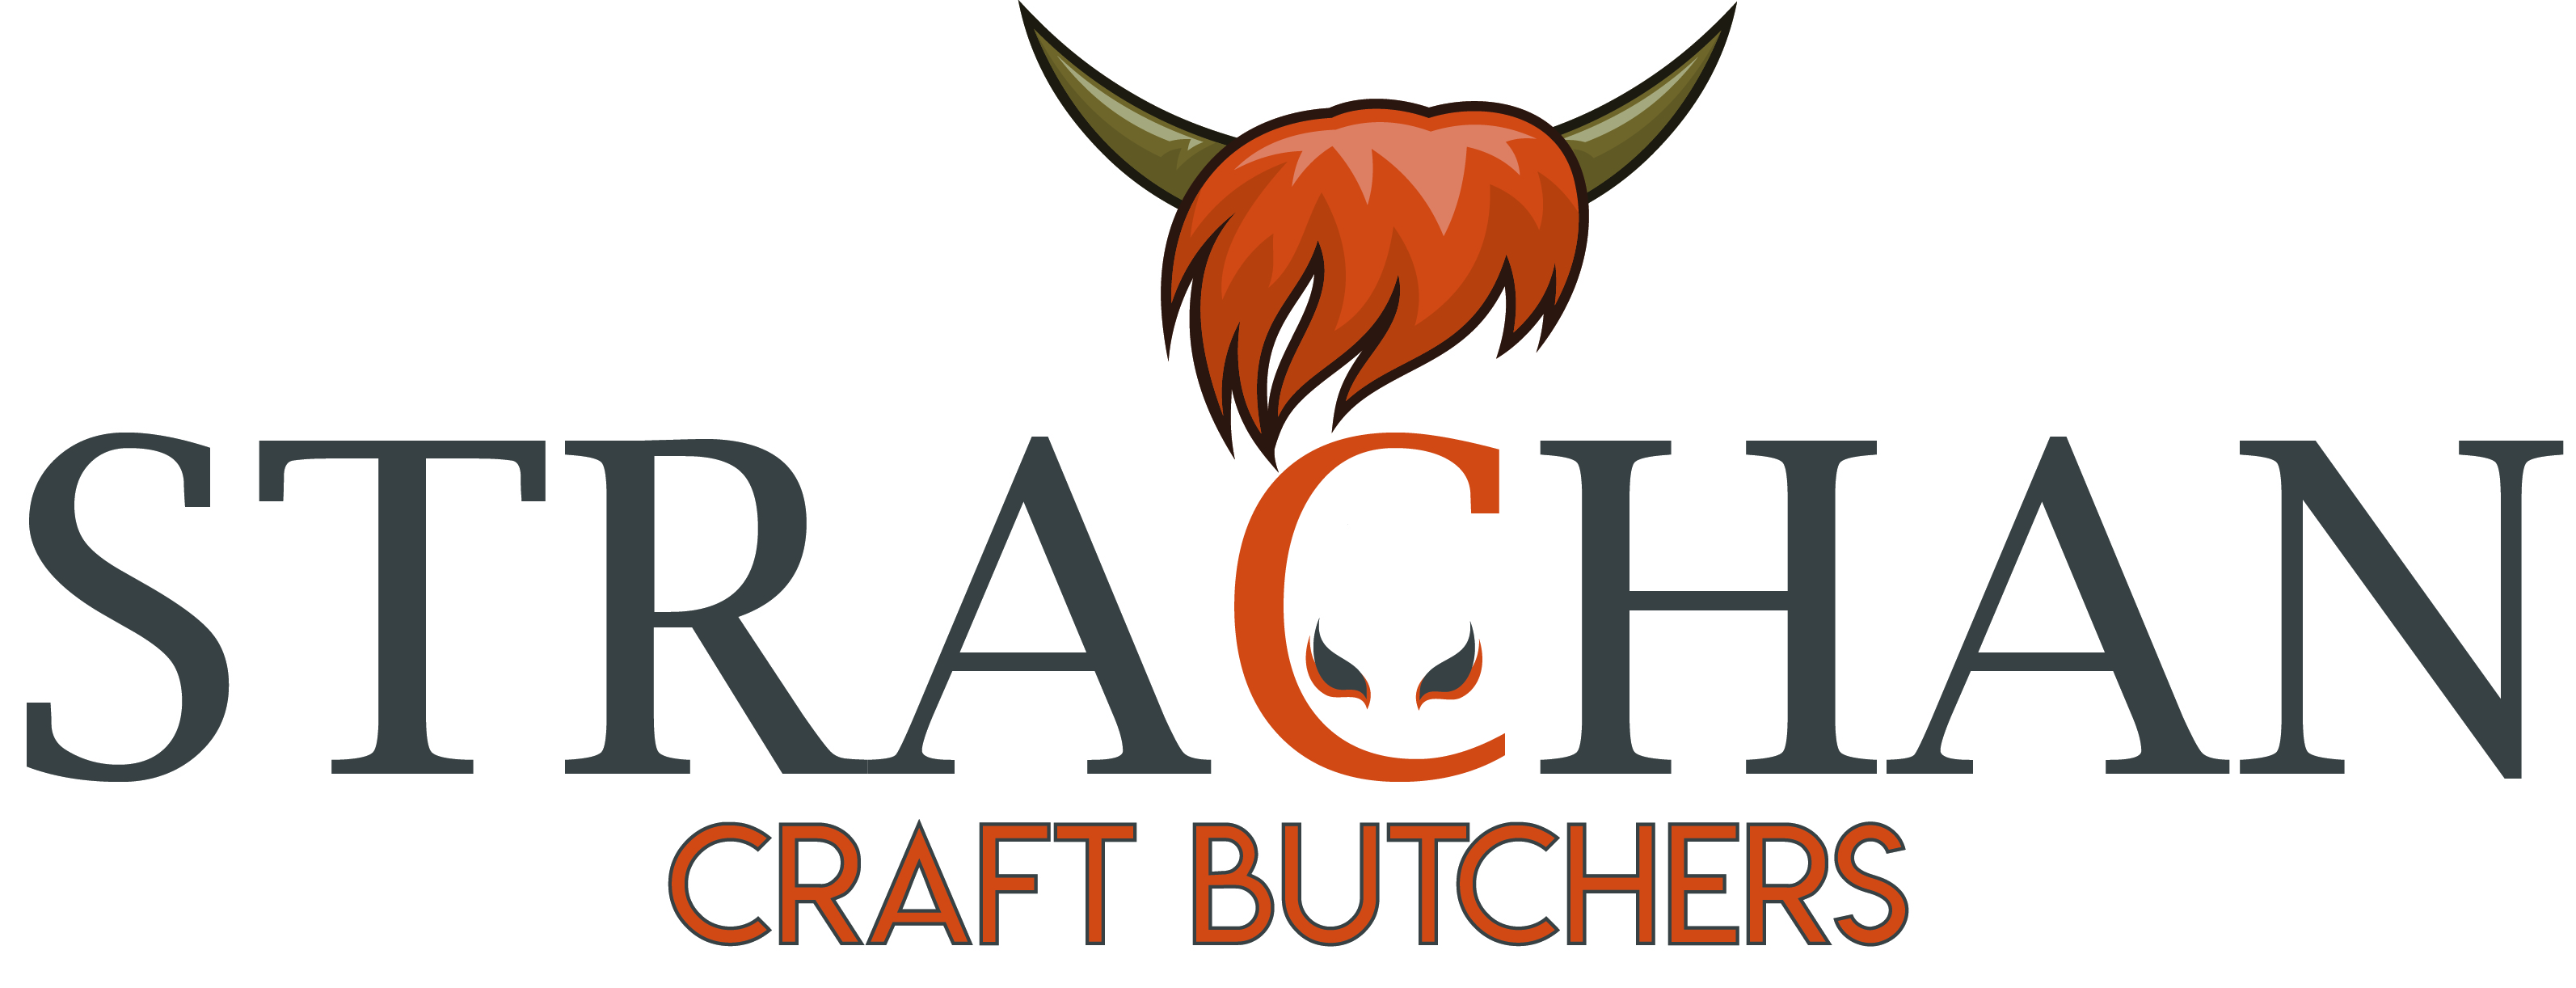 Strachan Craft Butchers